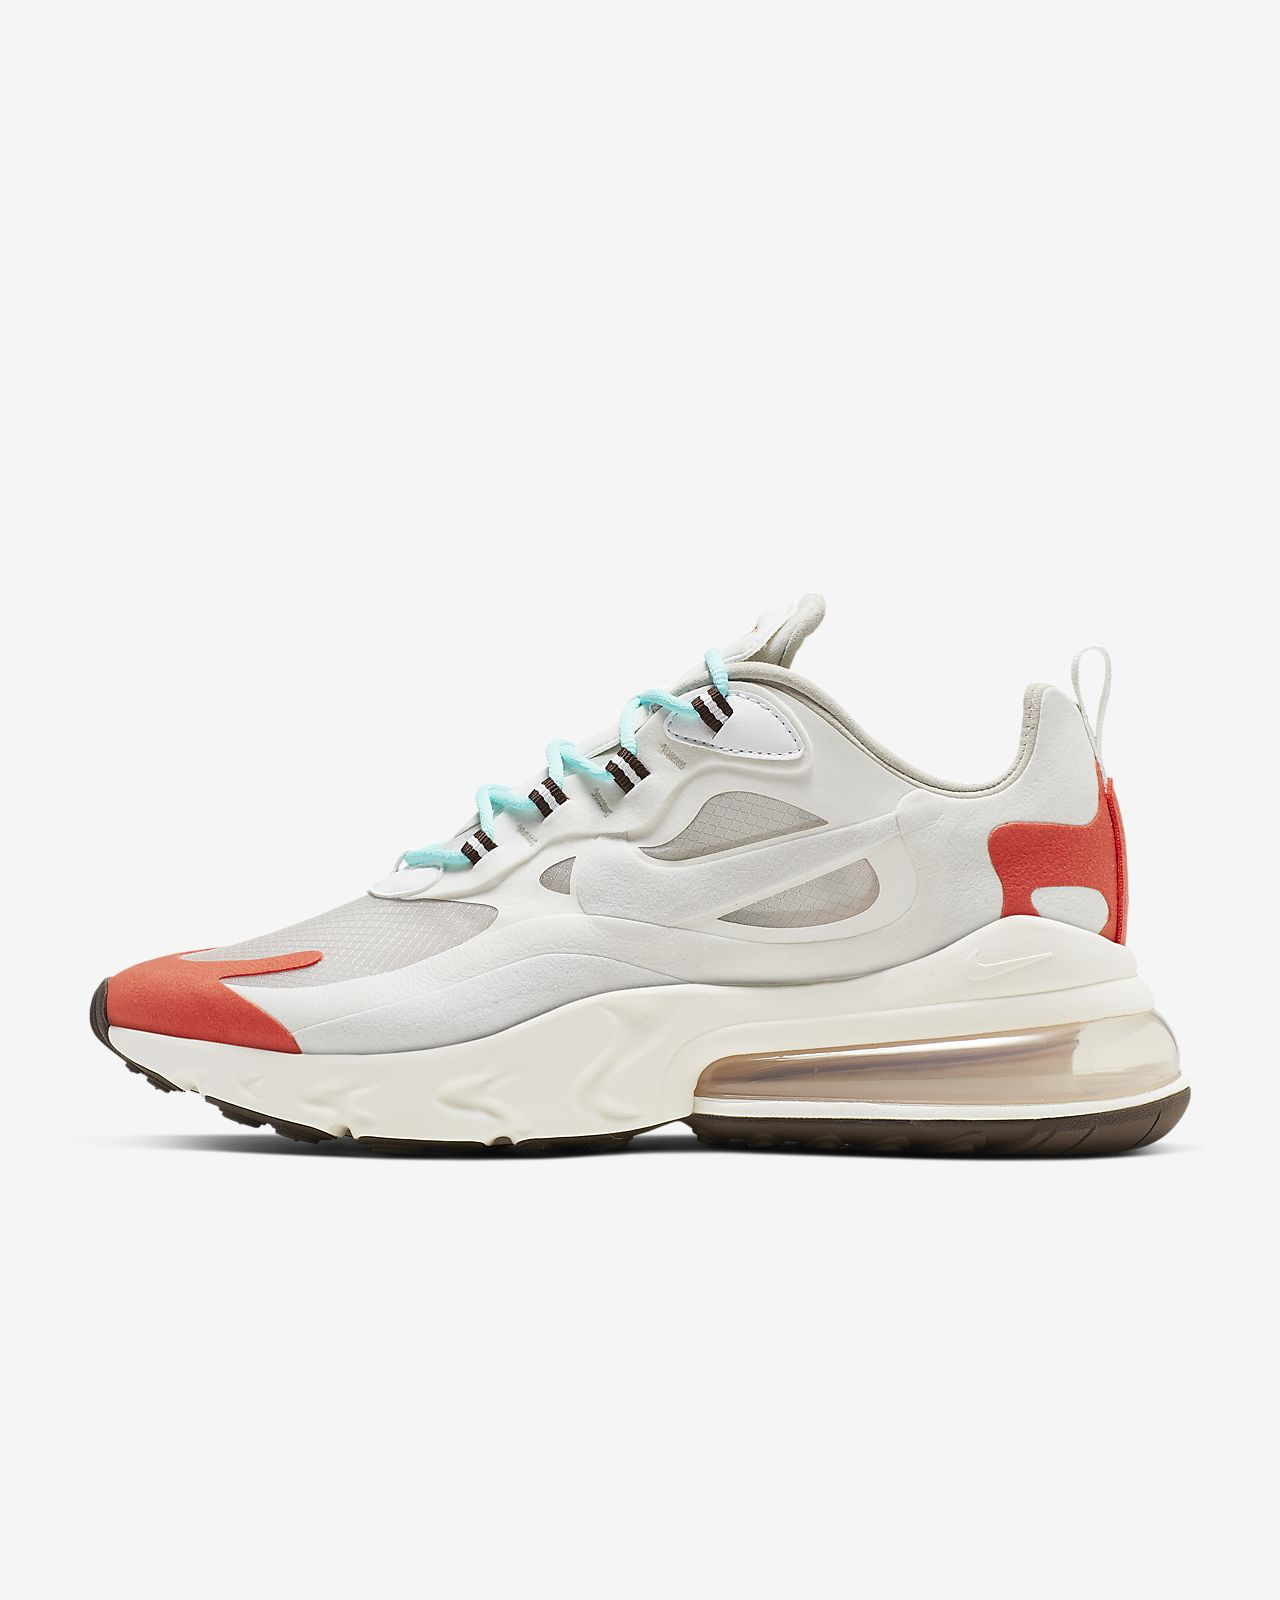 Nike Air Max 270 Colorways, Release Dates, Pricing | SBD